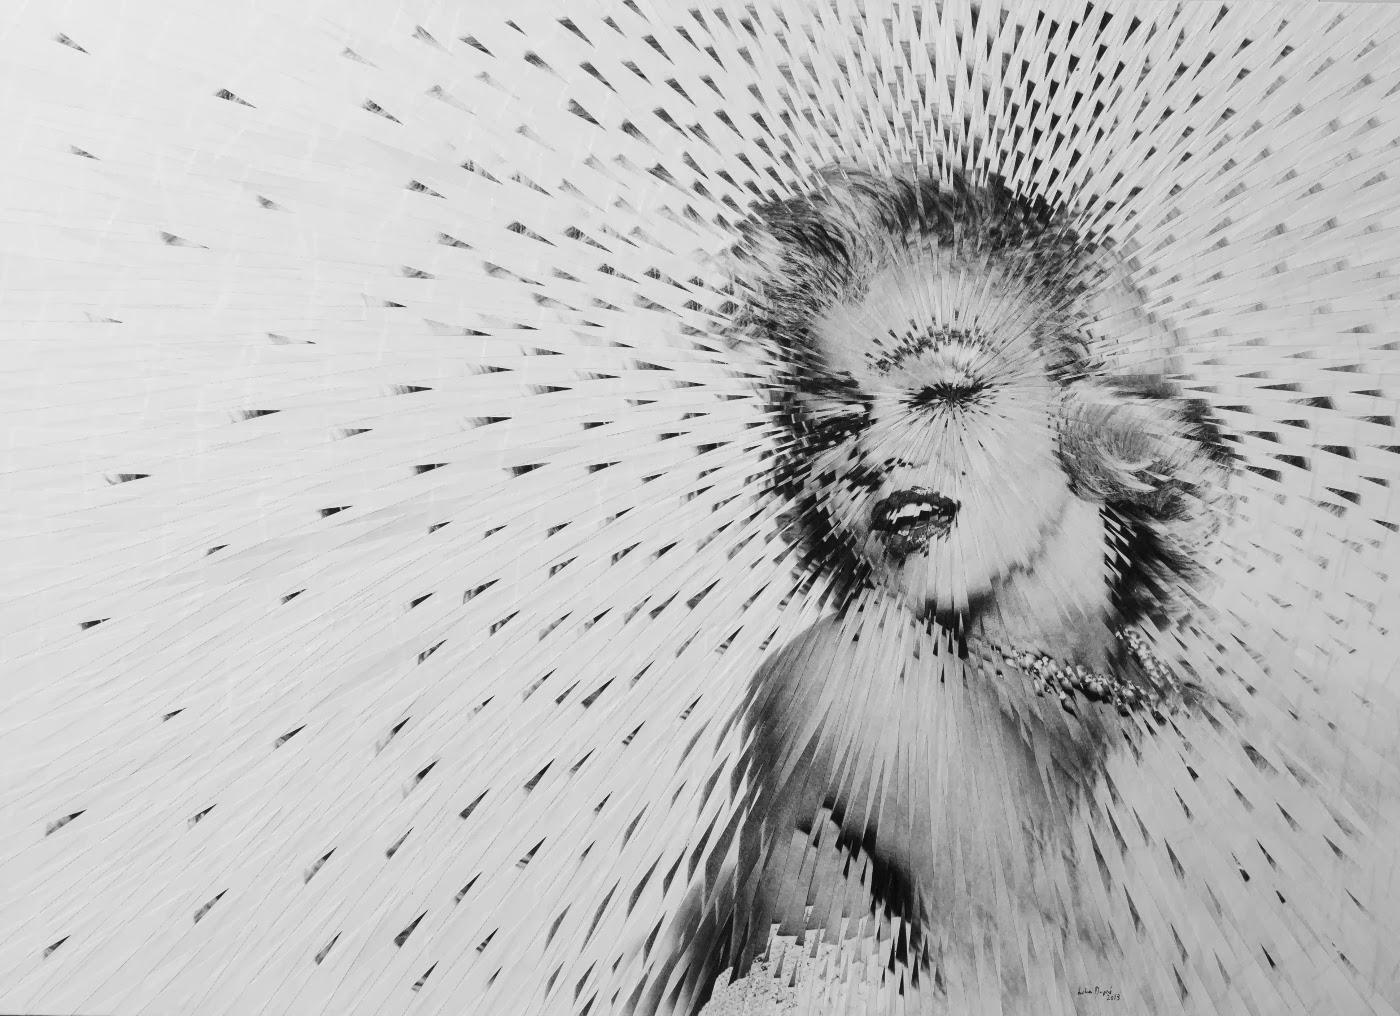 11-Marilyn-Monroe-Lola-Dupré-Collage-Exploding-Photographic-Portraits-www-designstack-co